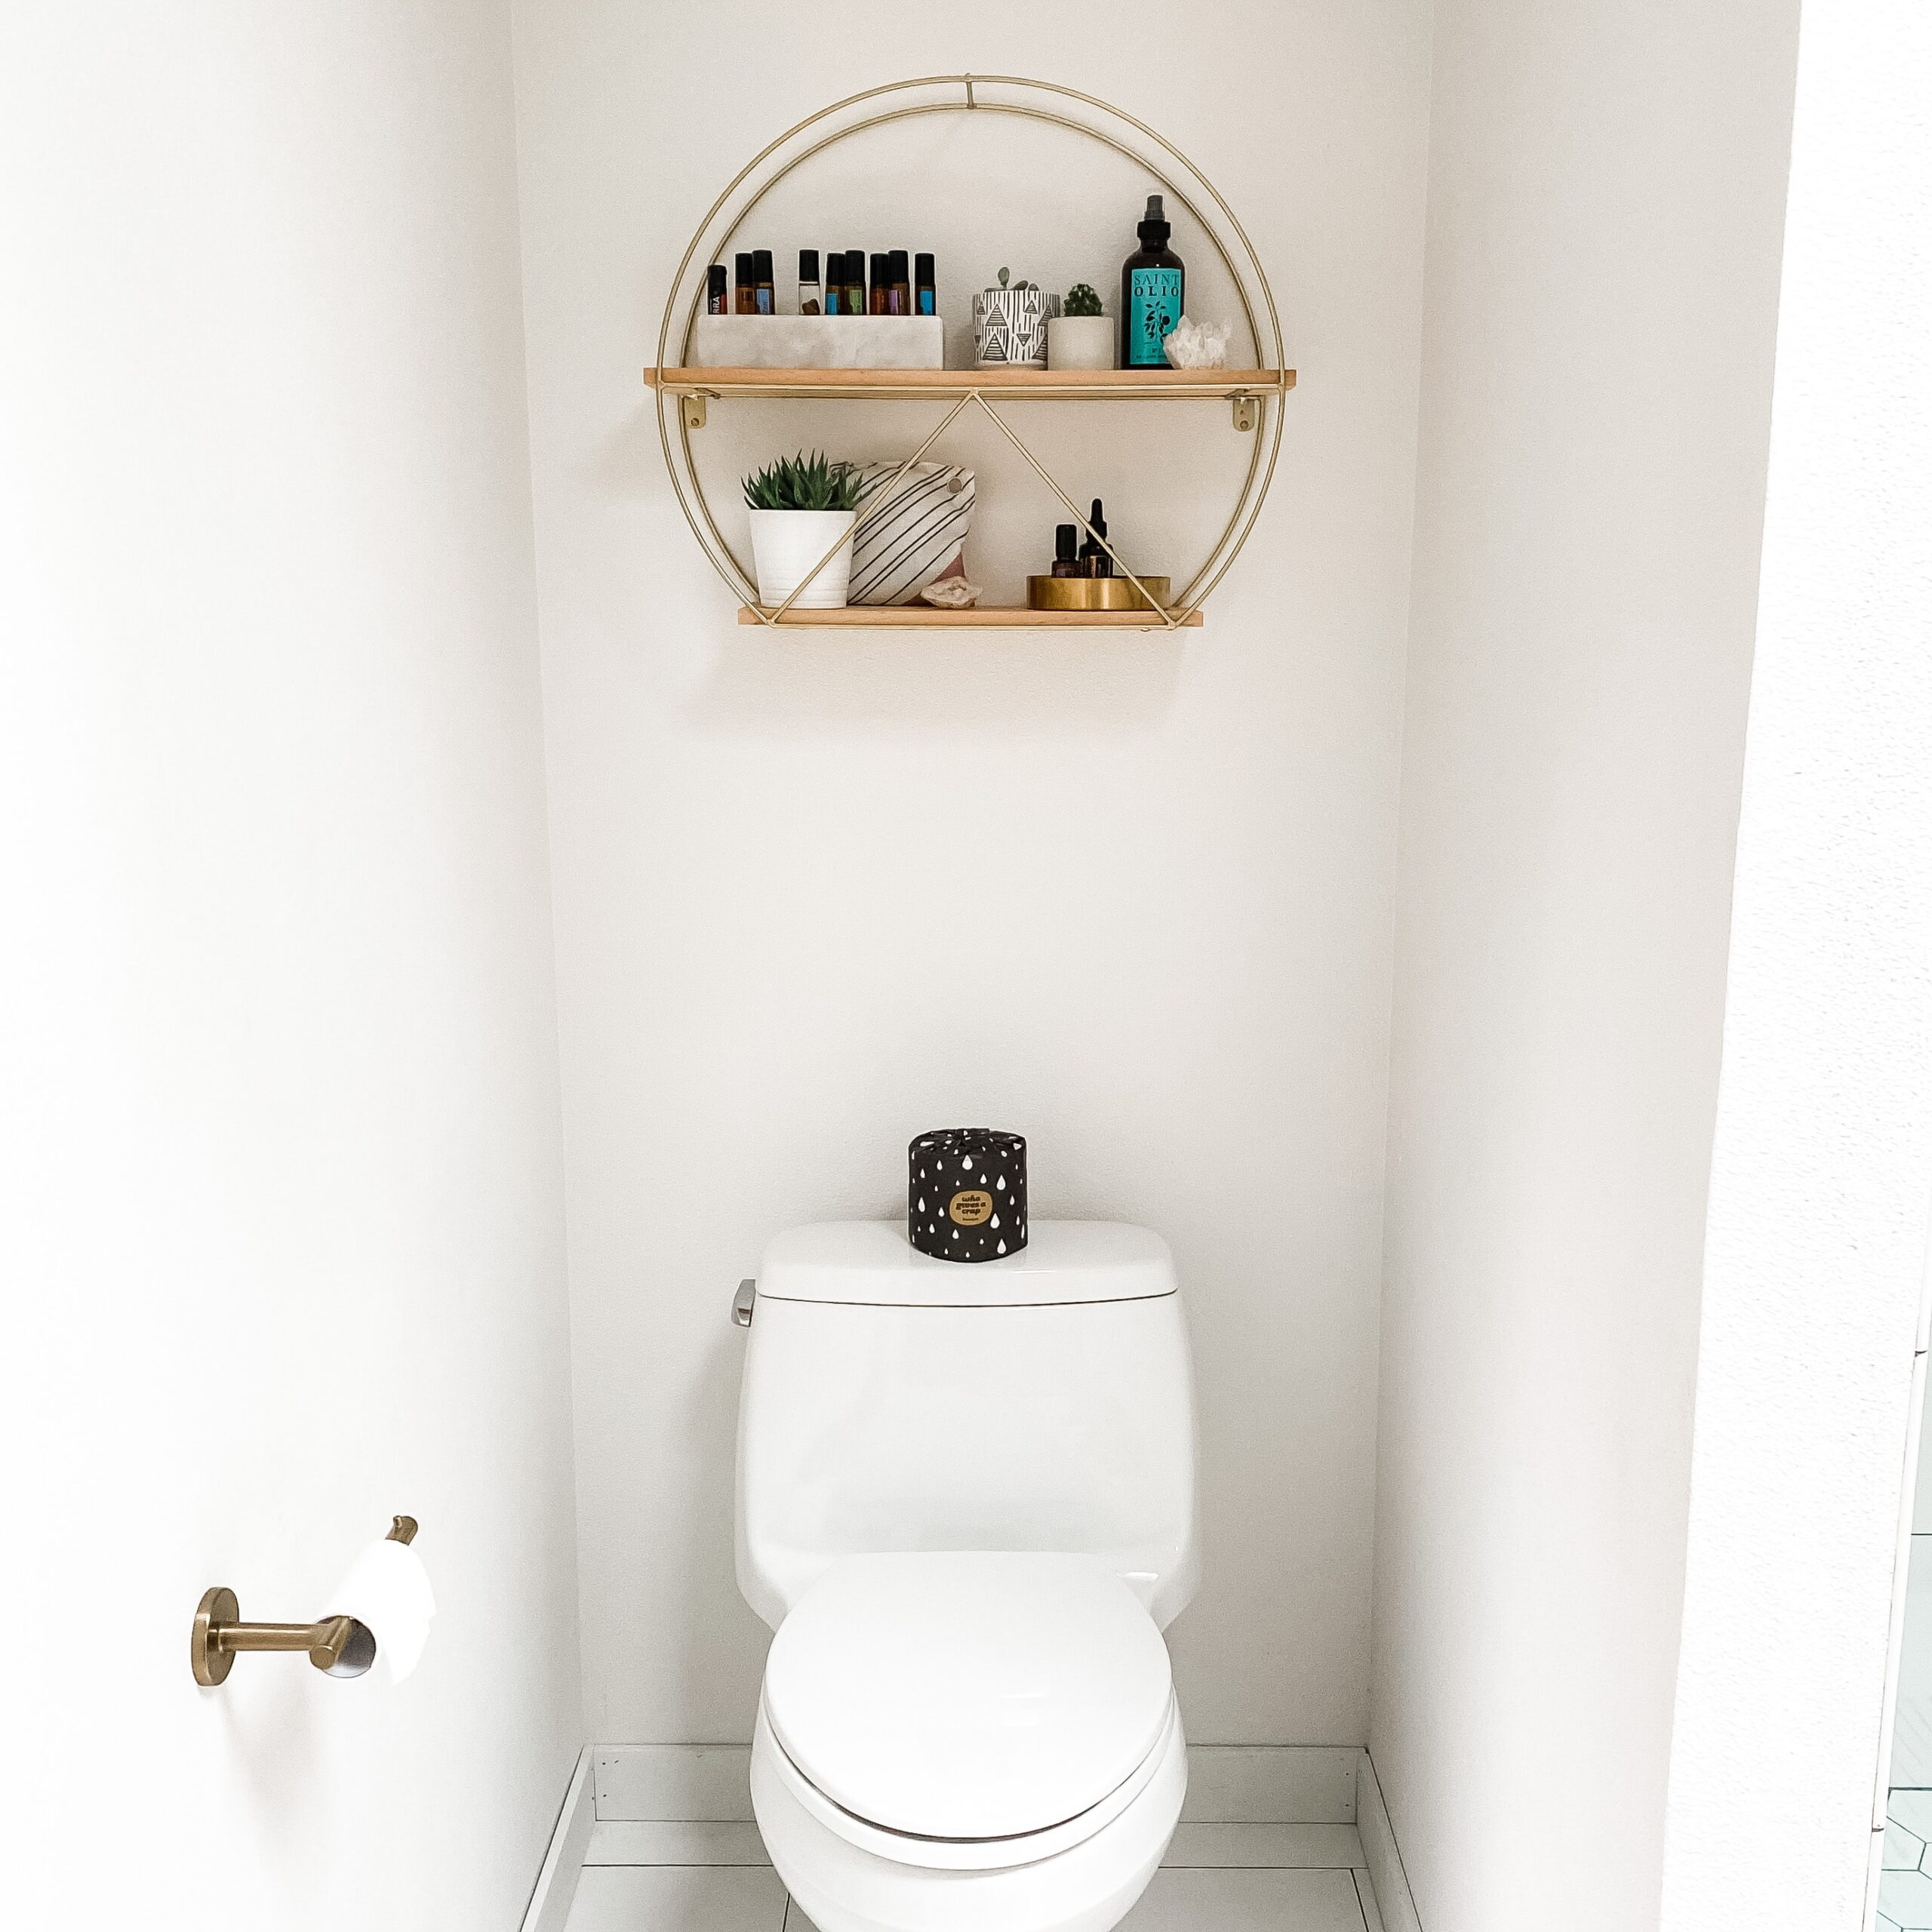 Tips for Clogged Drains